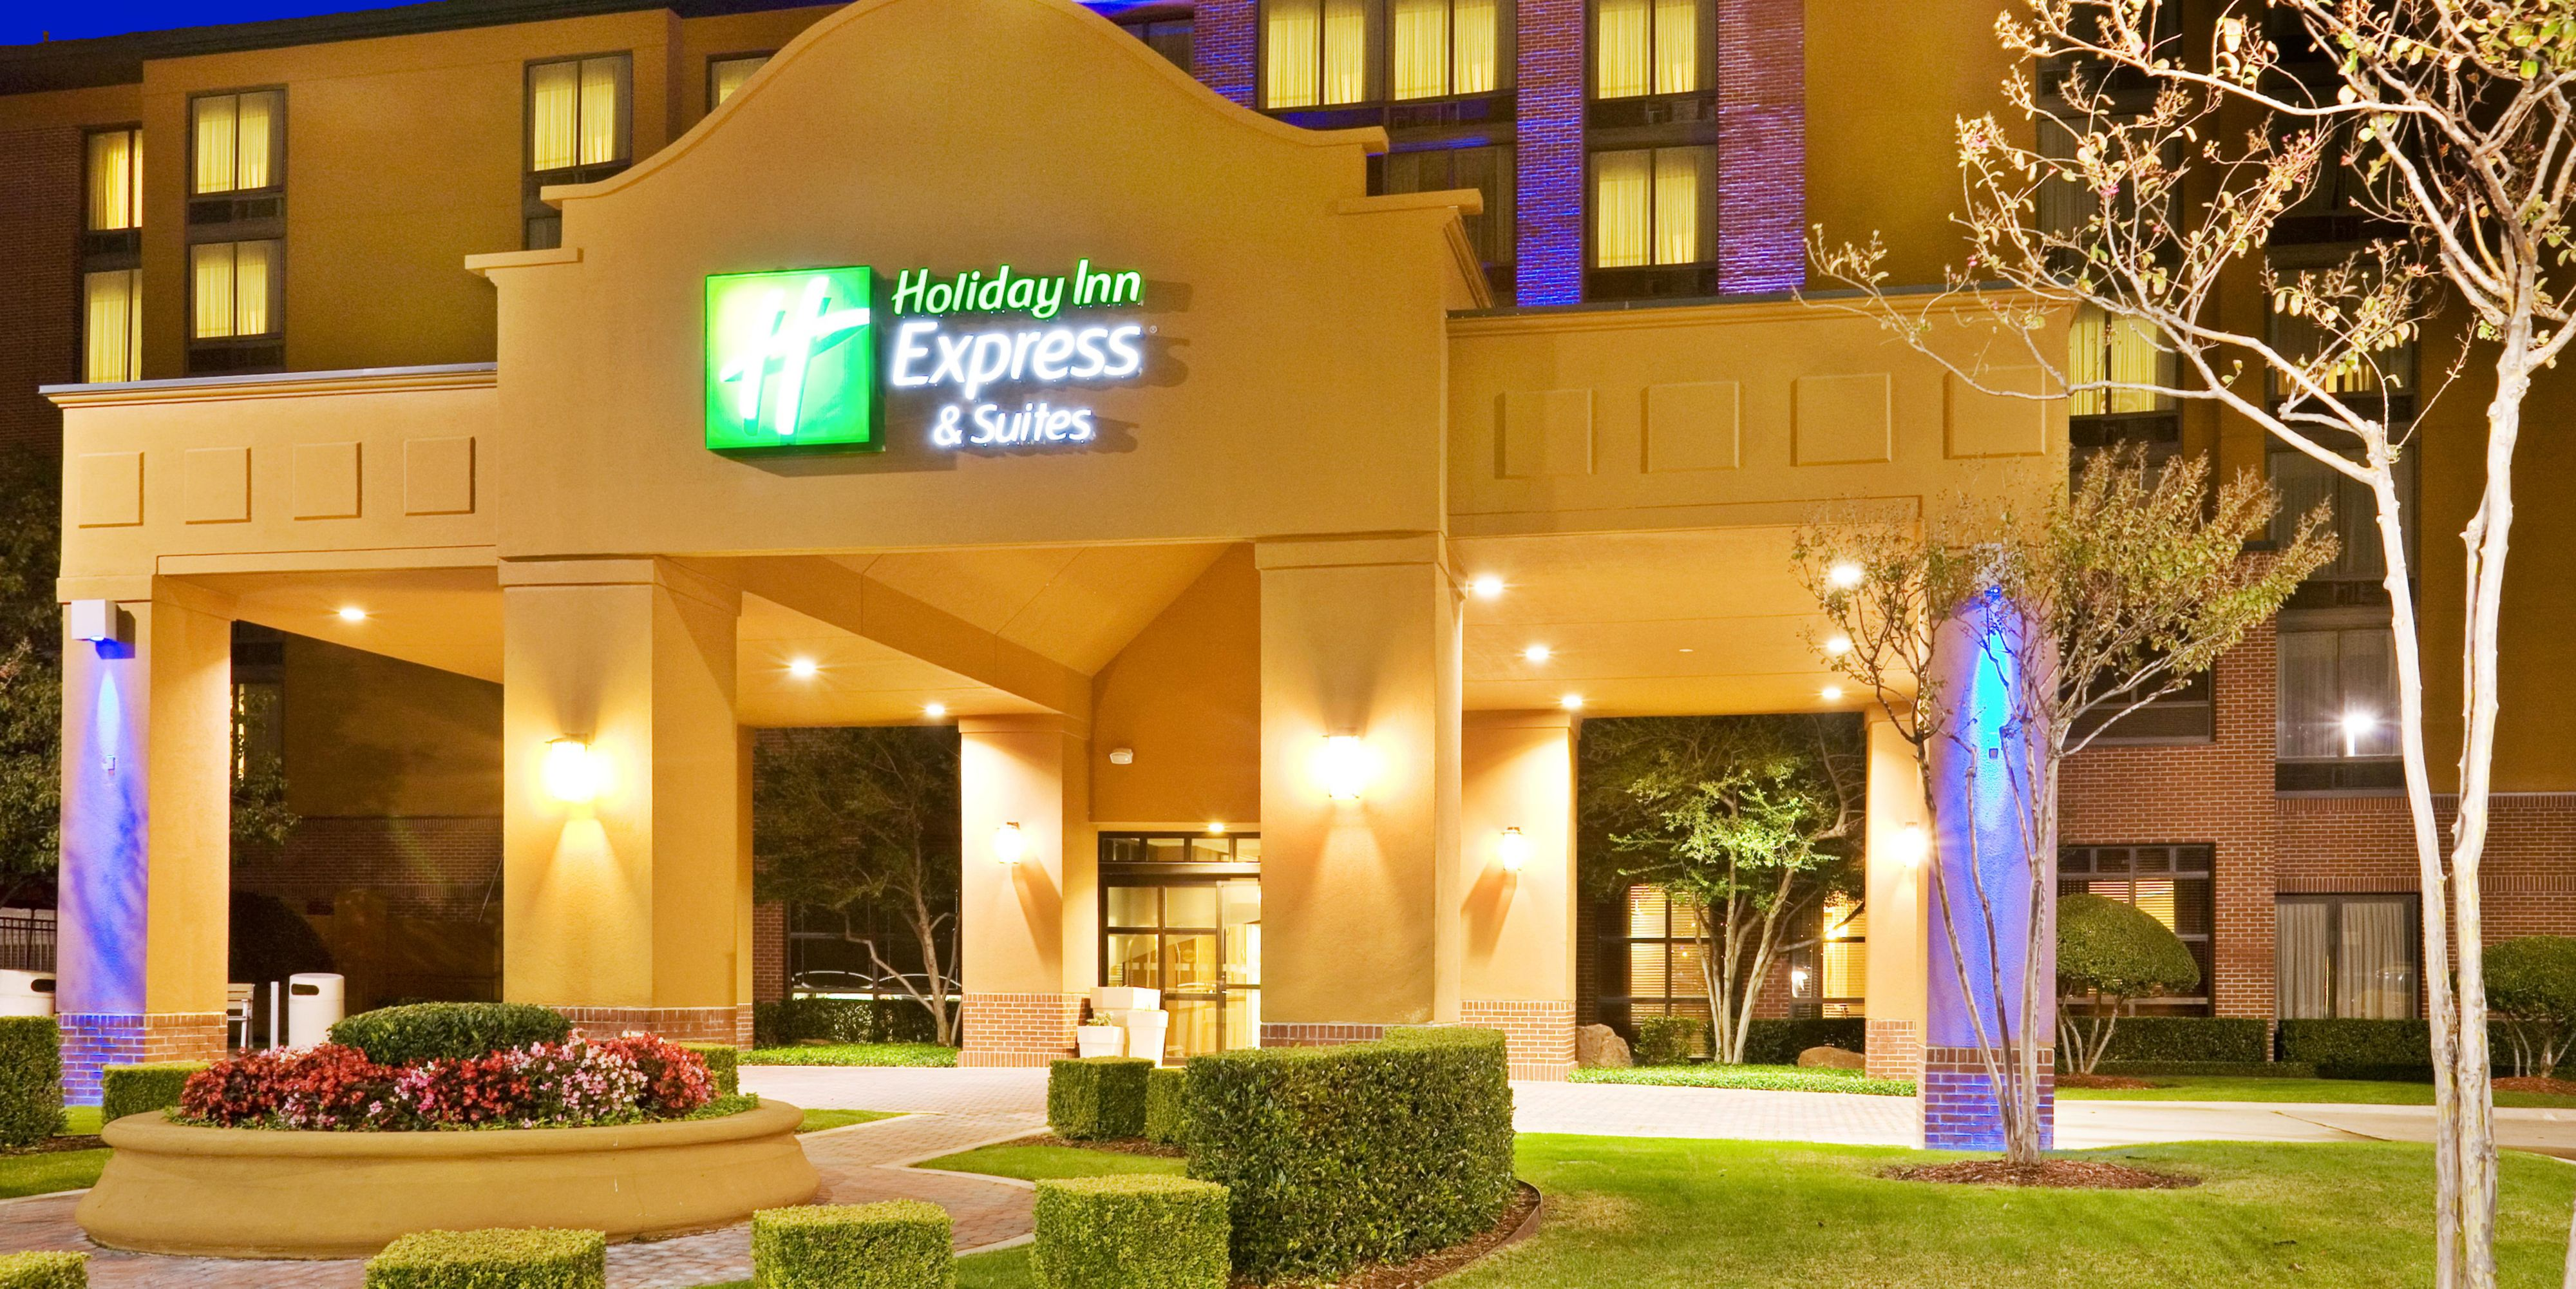 holiday-inn-express-and-suites-irving-4188977440-2x1.jpg